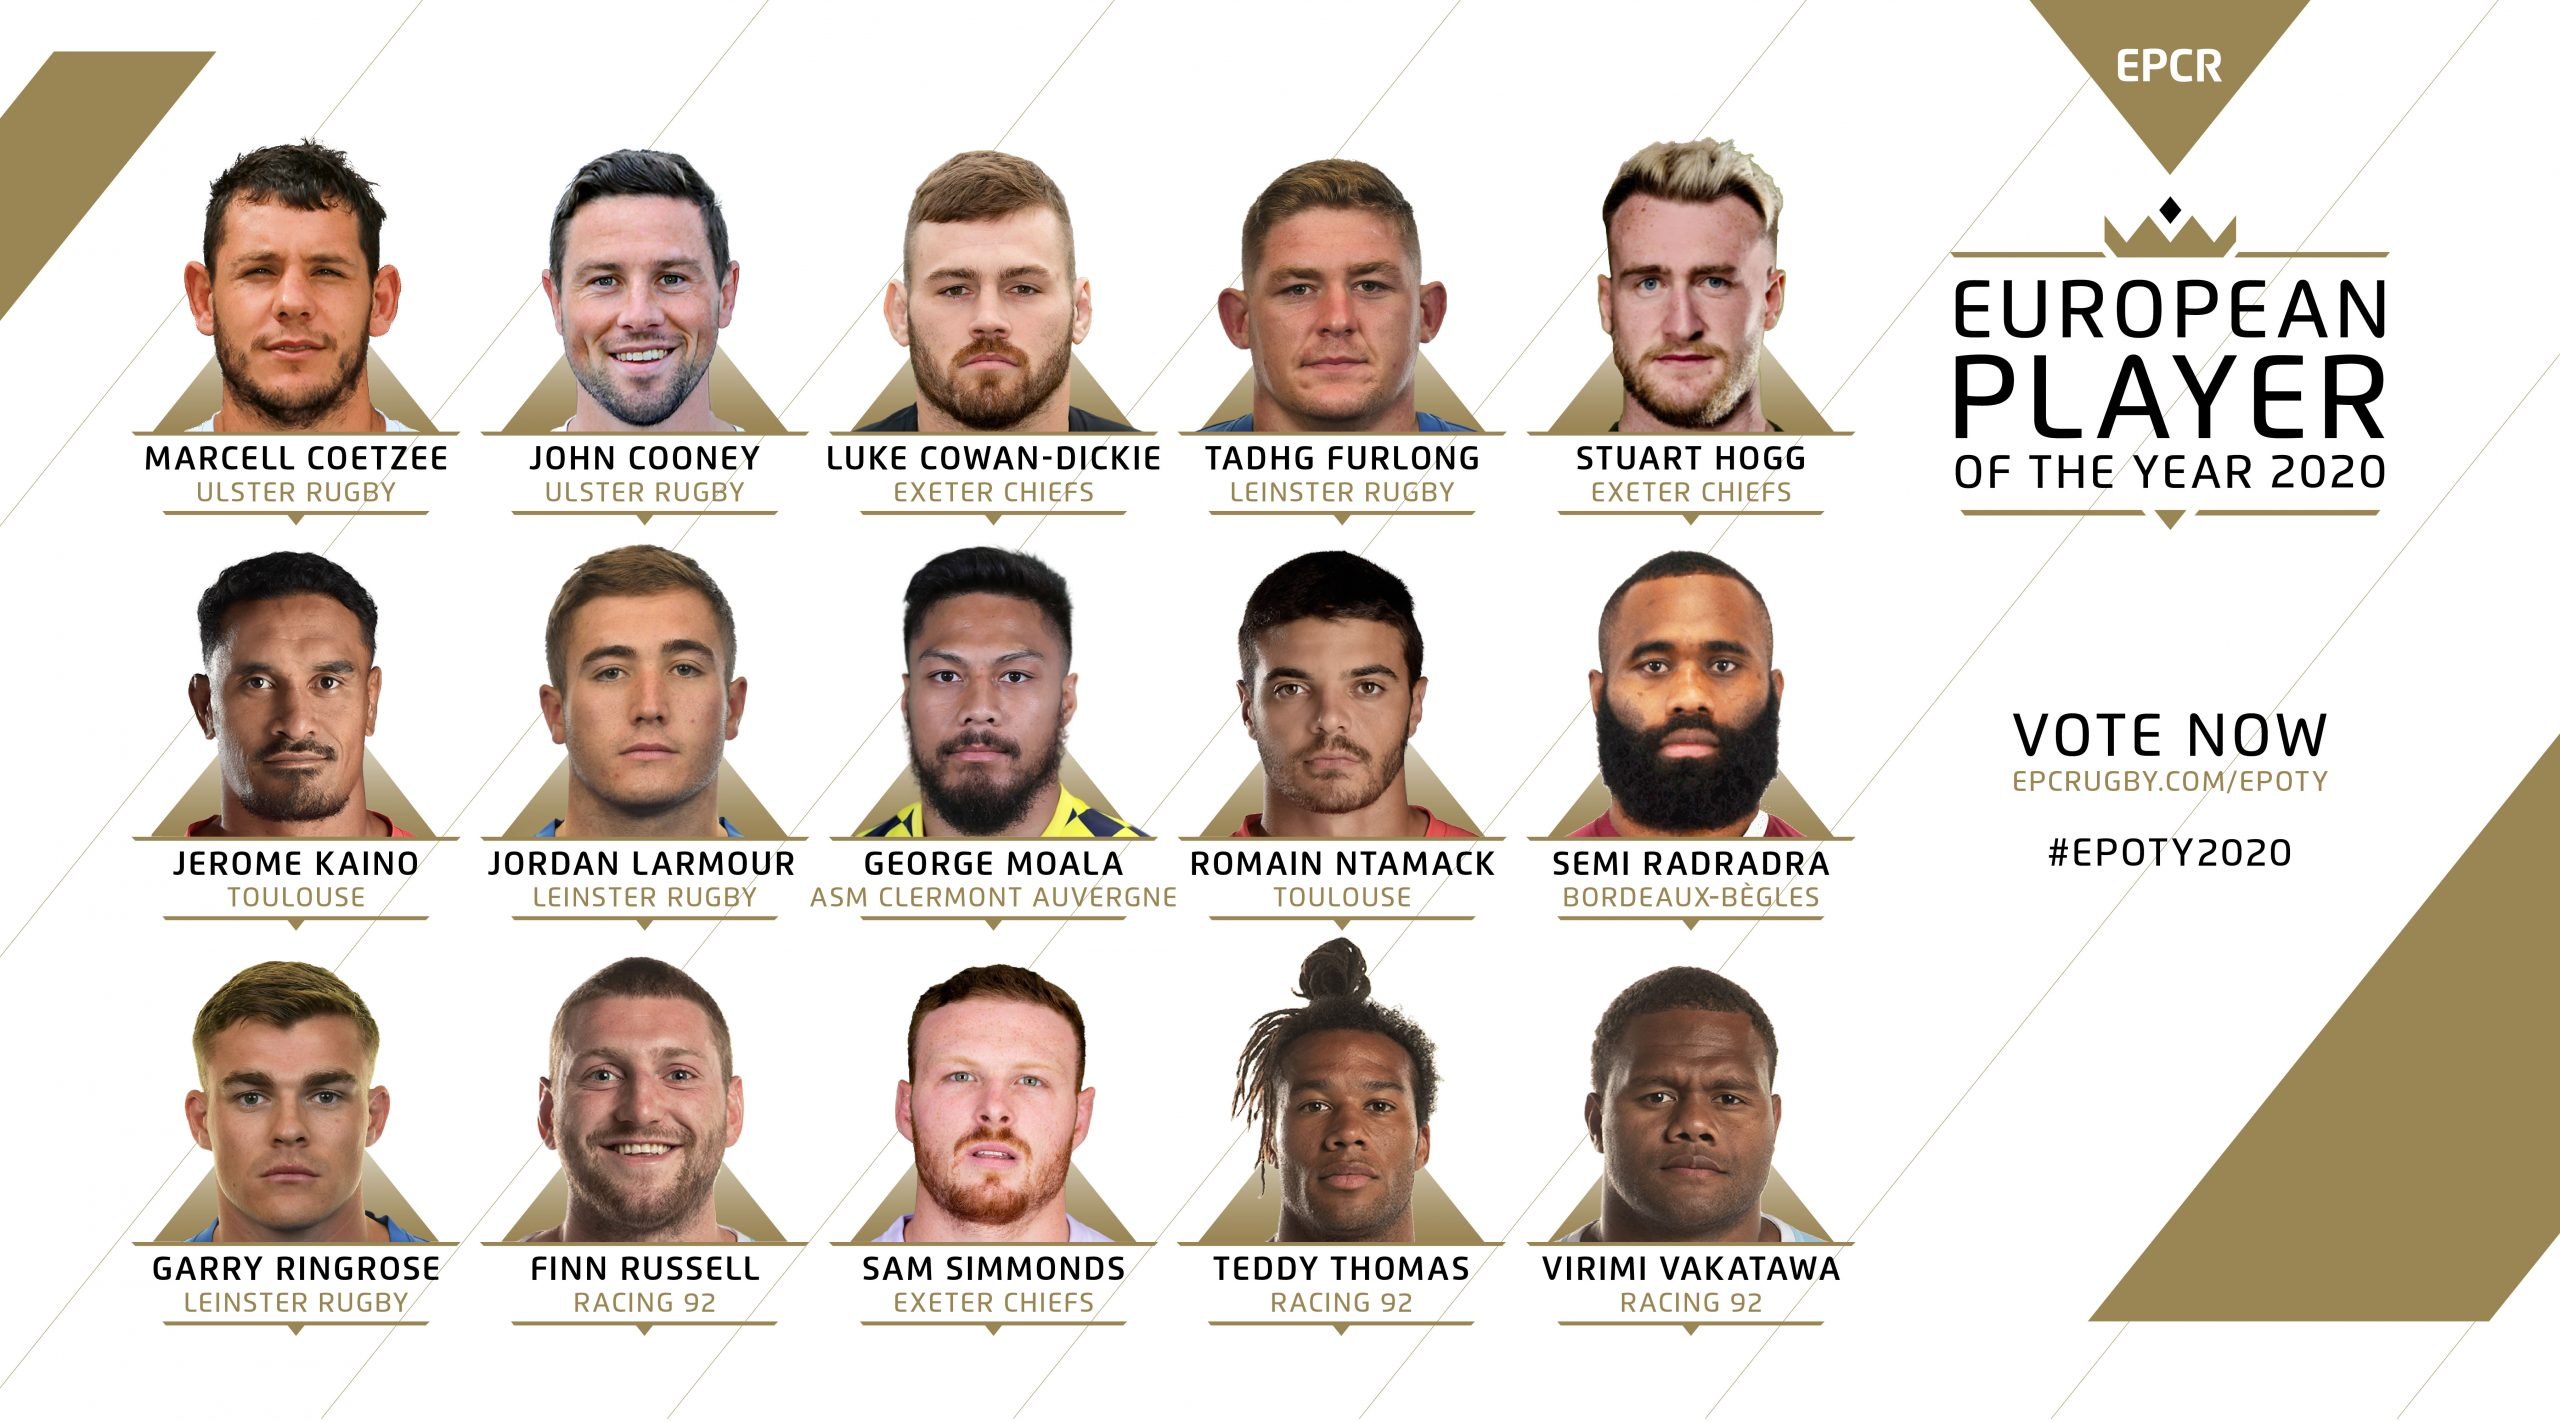 EPCR European Player of the Year